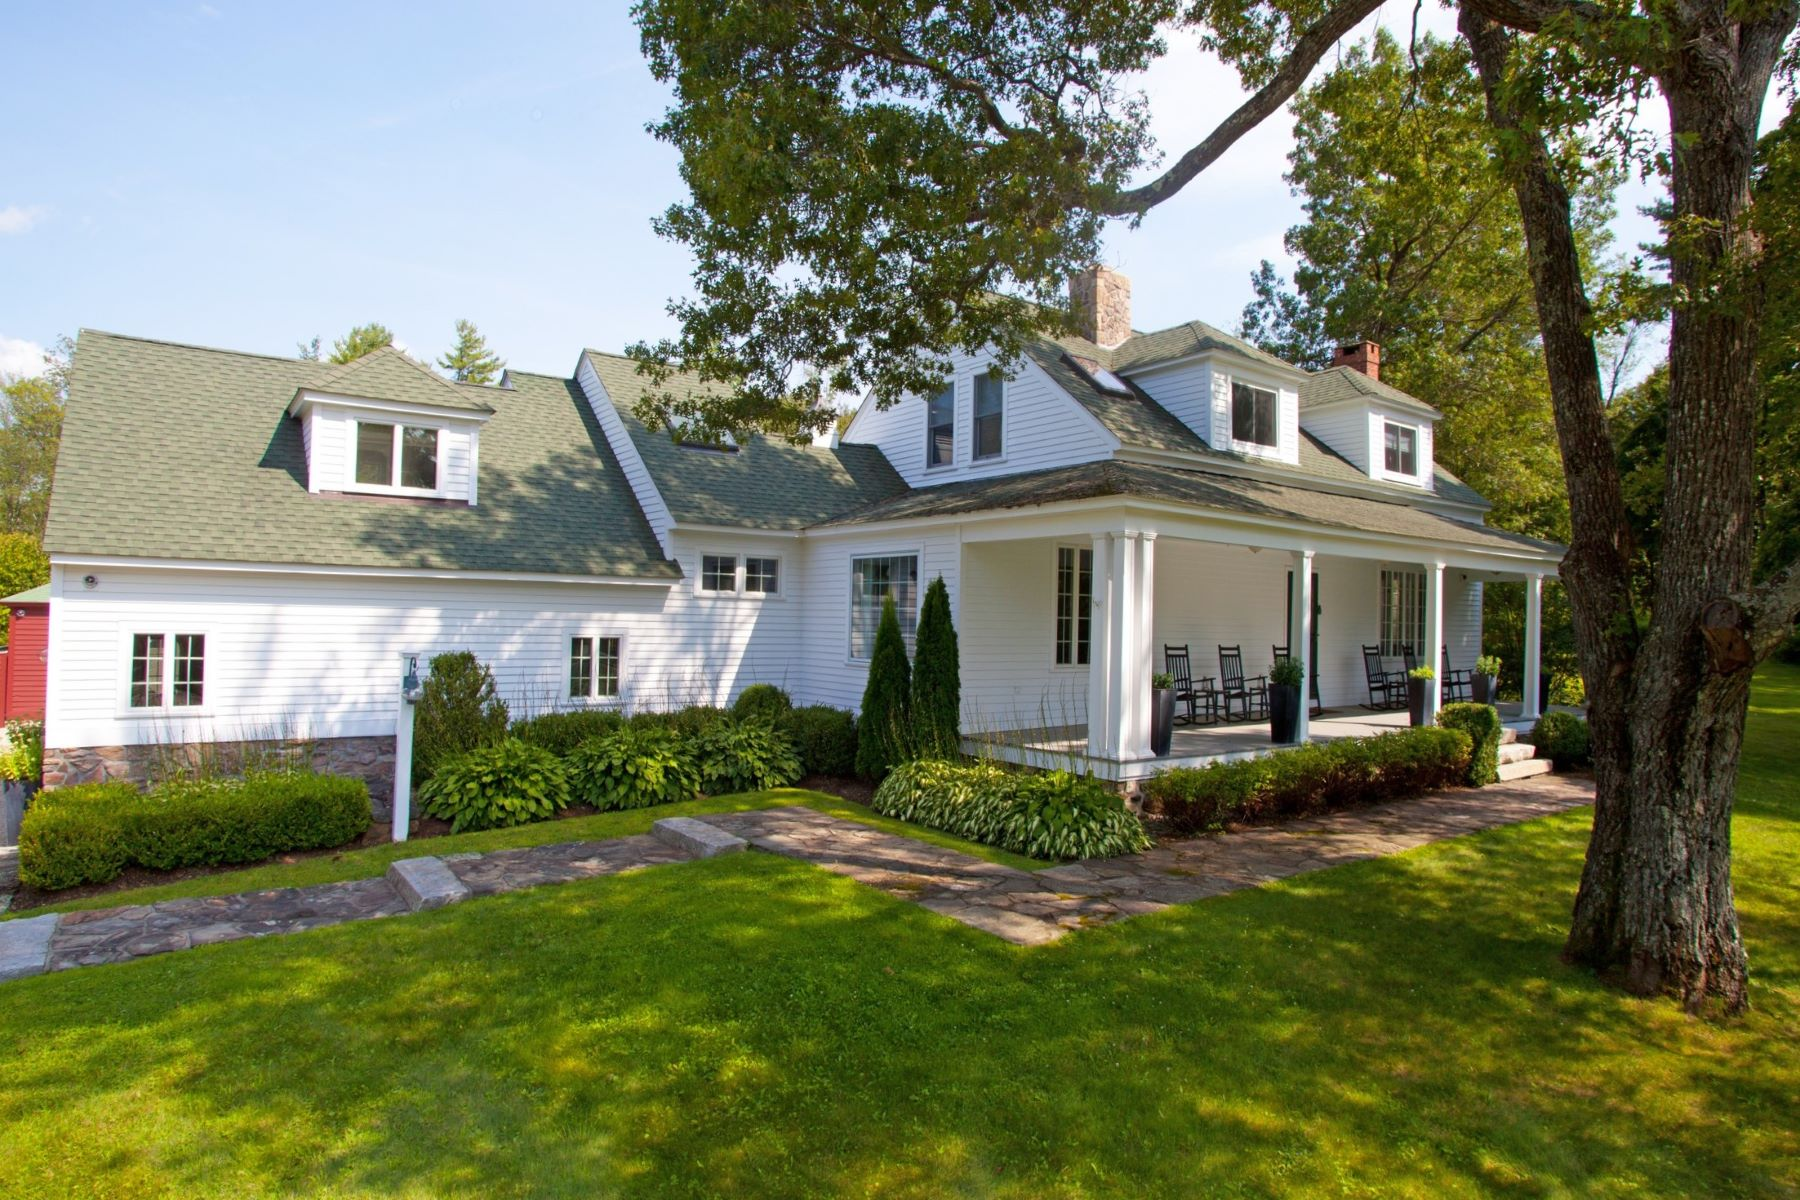 Single Family Homes للـ Sale في Classy 1930 Cape Cod 101 Cornwall Road, Warren, Connecticut 06754 United States